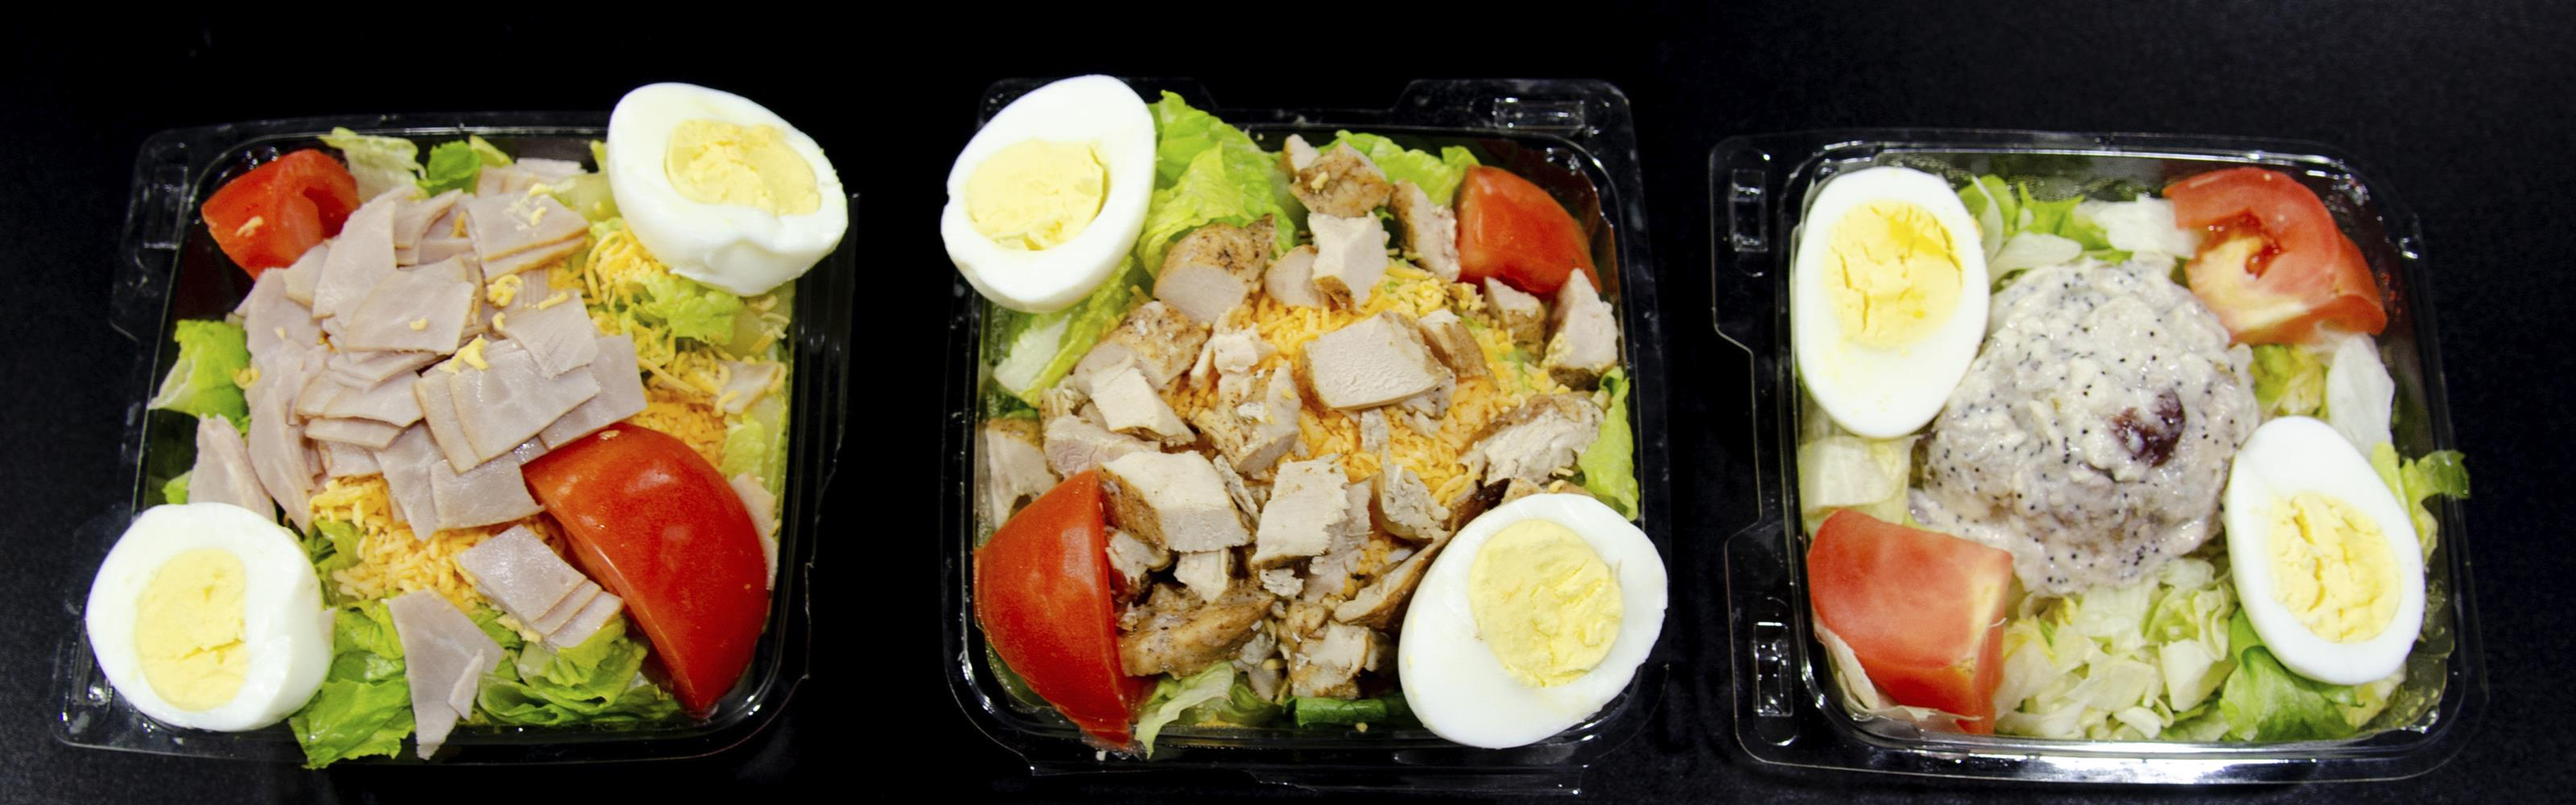 three salads with different kinds of meat and hard boiled eggs